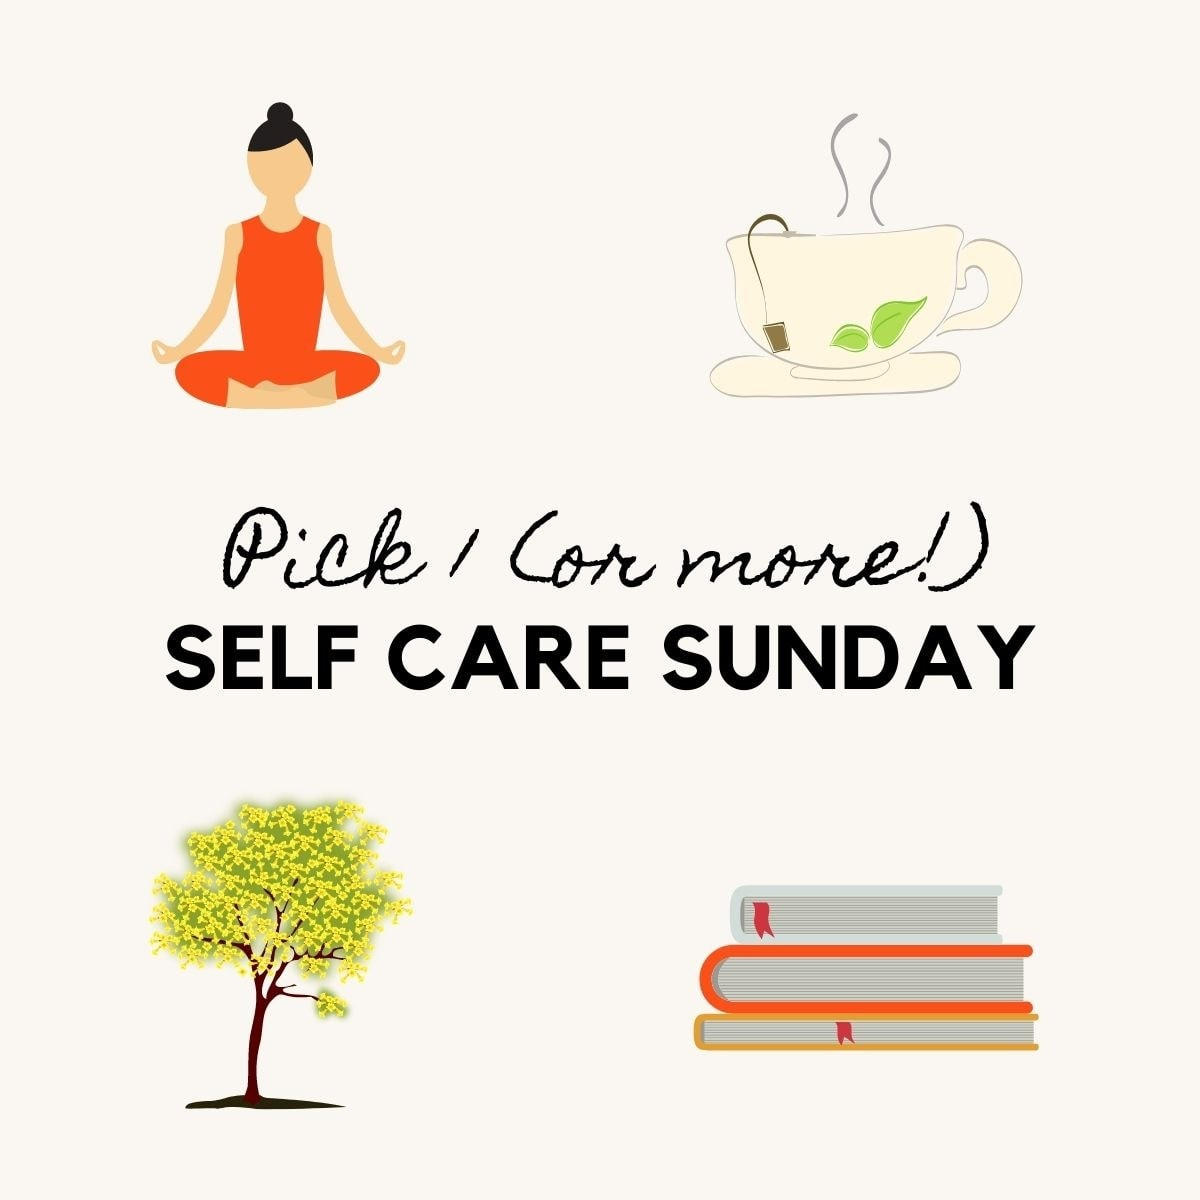 Healthy new year illustrations with a woman doing yoga, a cup of tea, a tree, and a pile of books for self care.